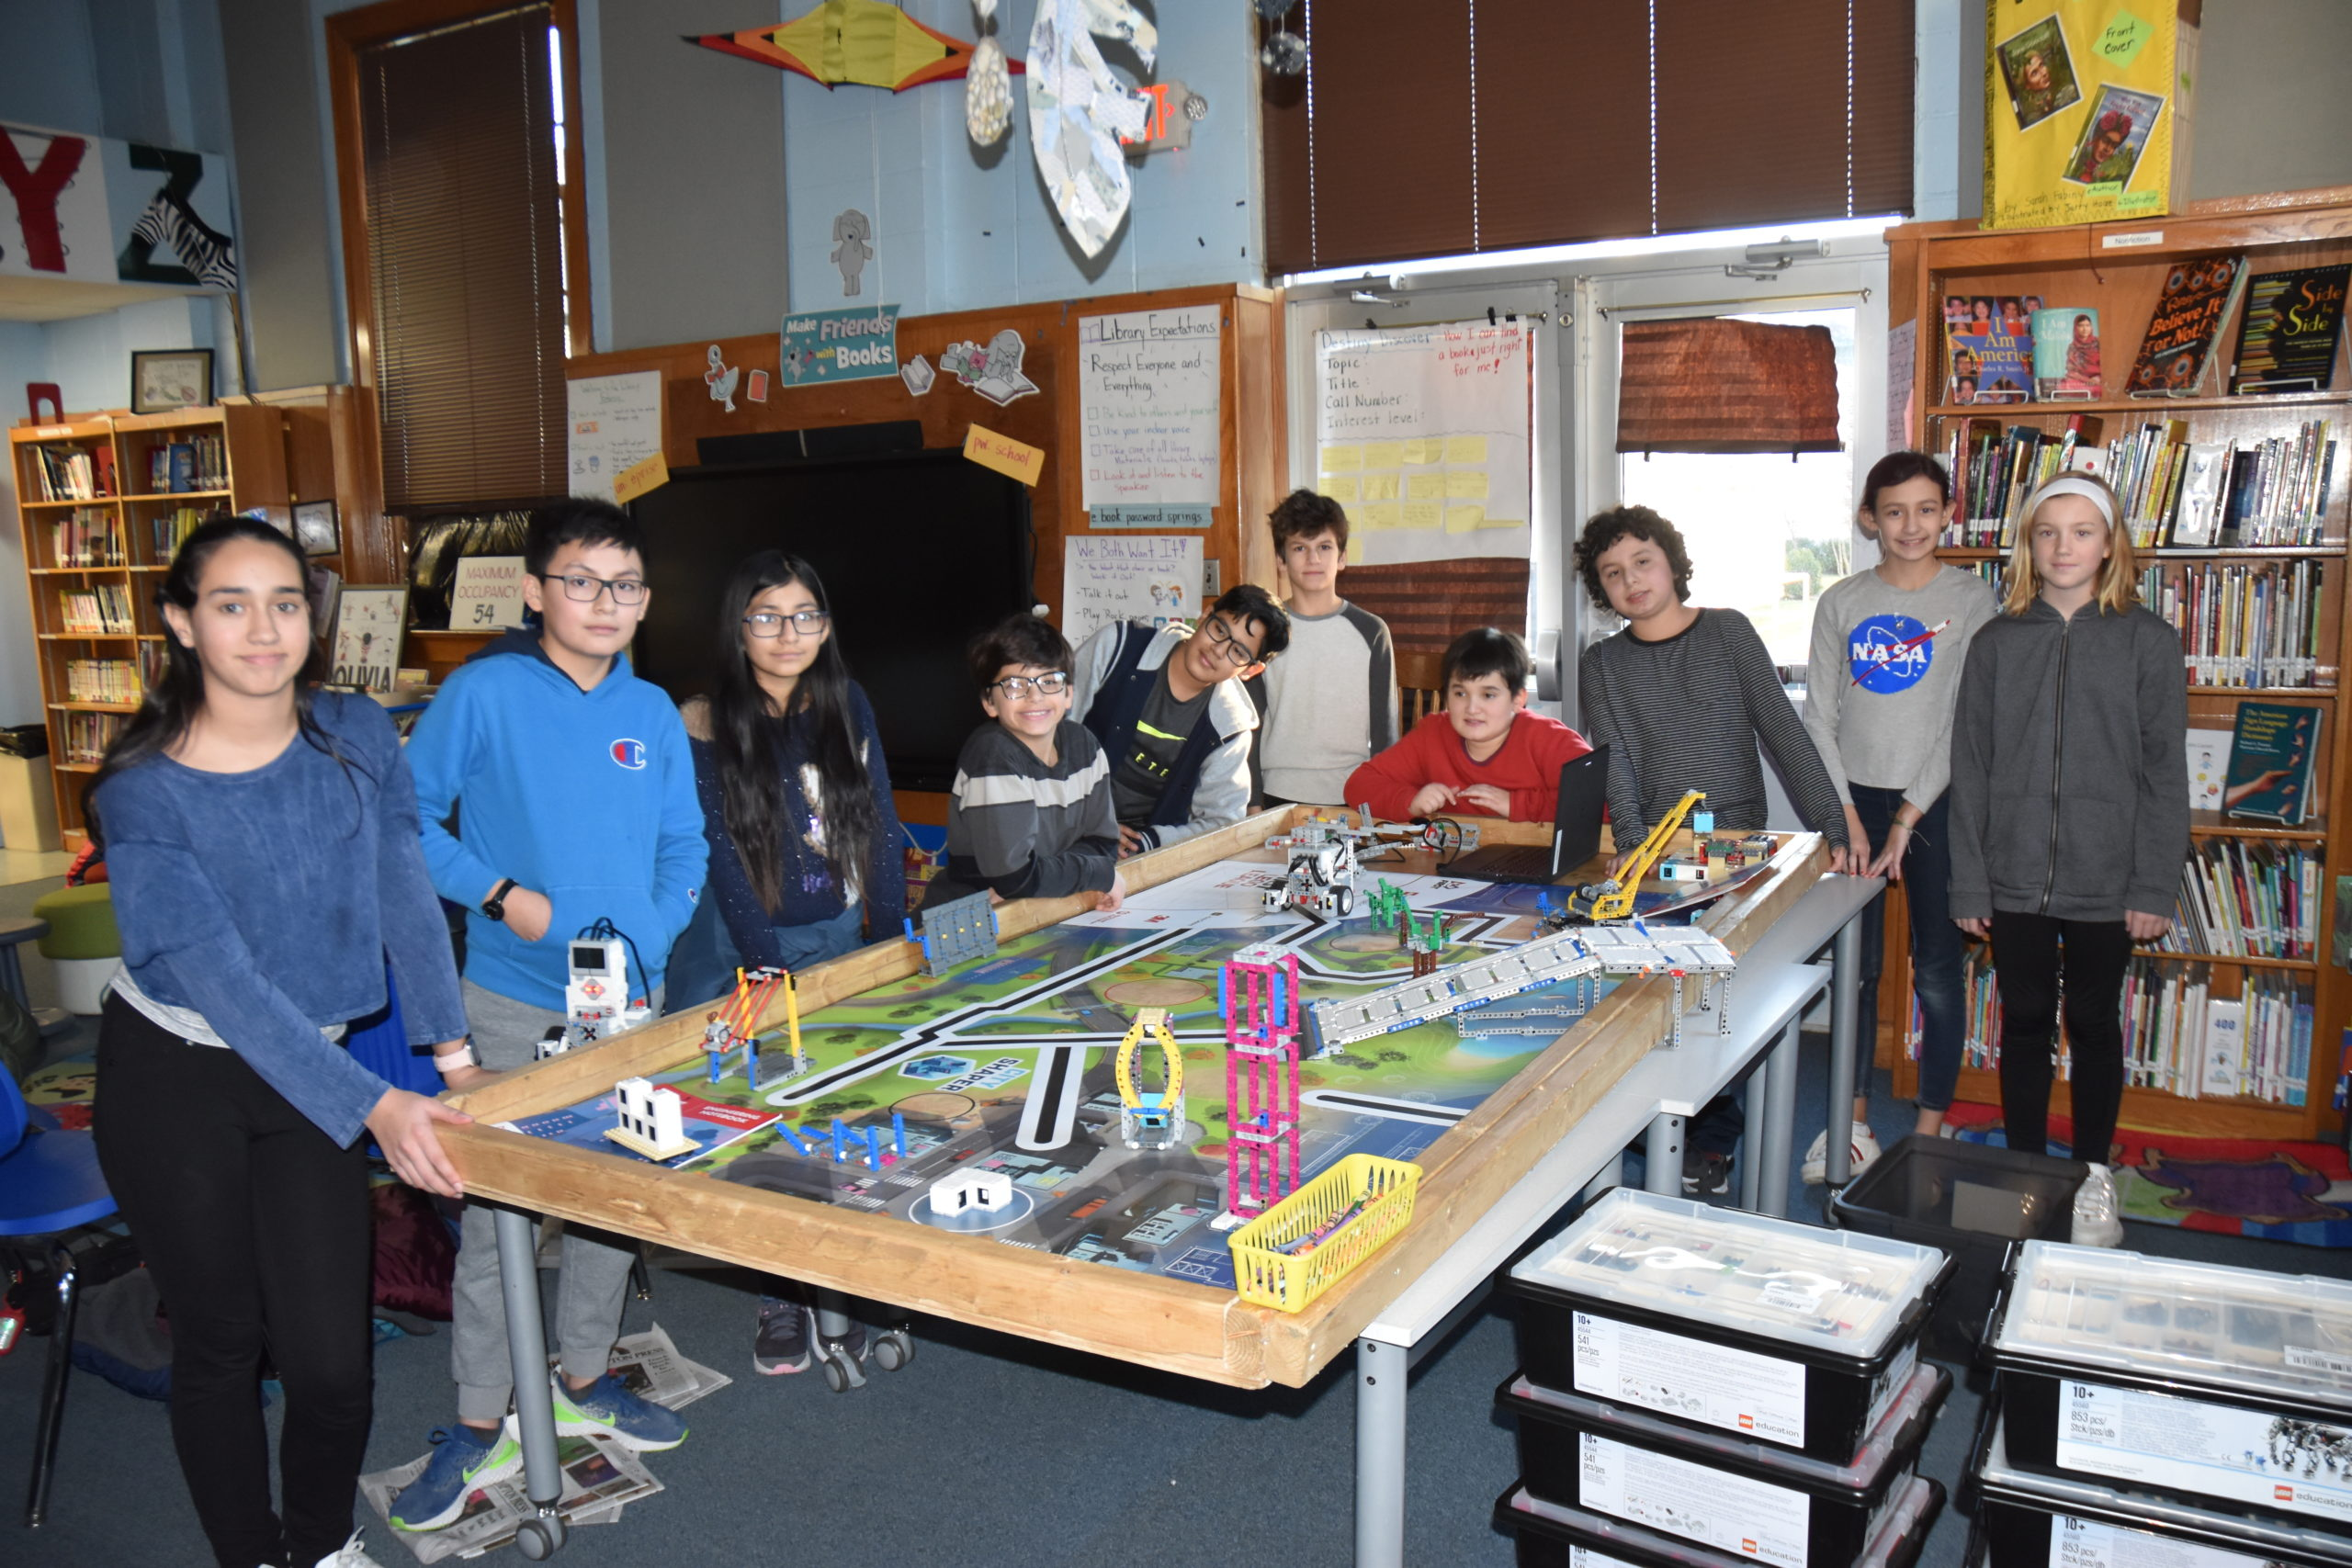 Members of the Springs School's Bionic Bonac Builders gathered in the school library last week. STEPHEN J. KOTZ